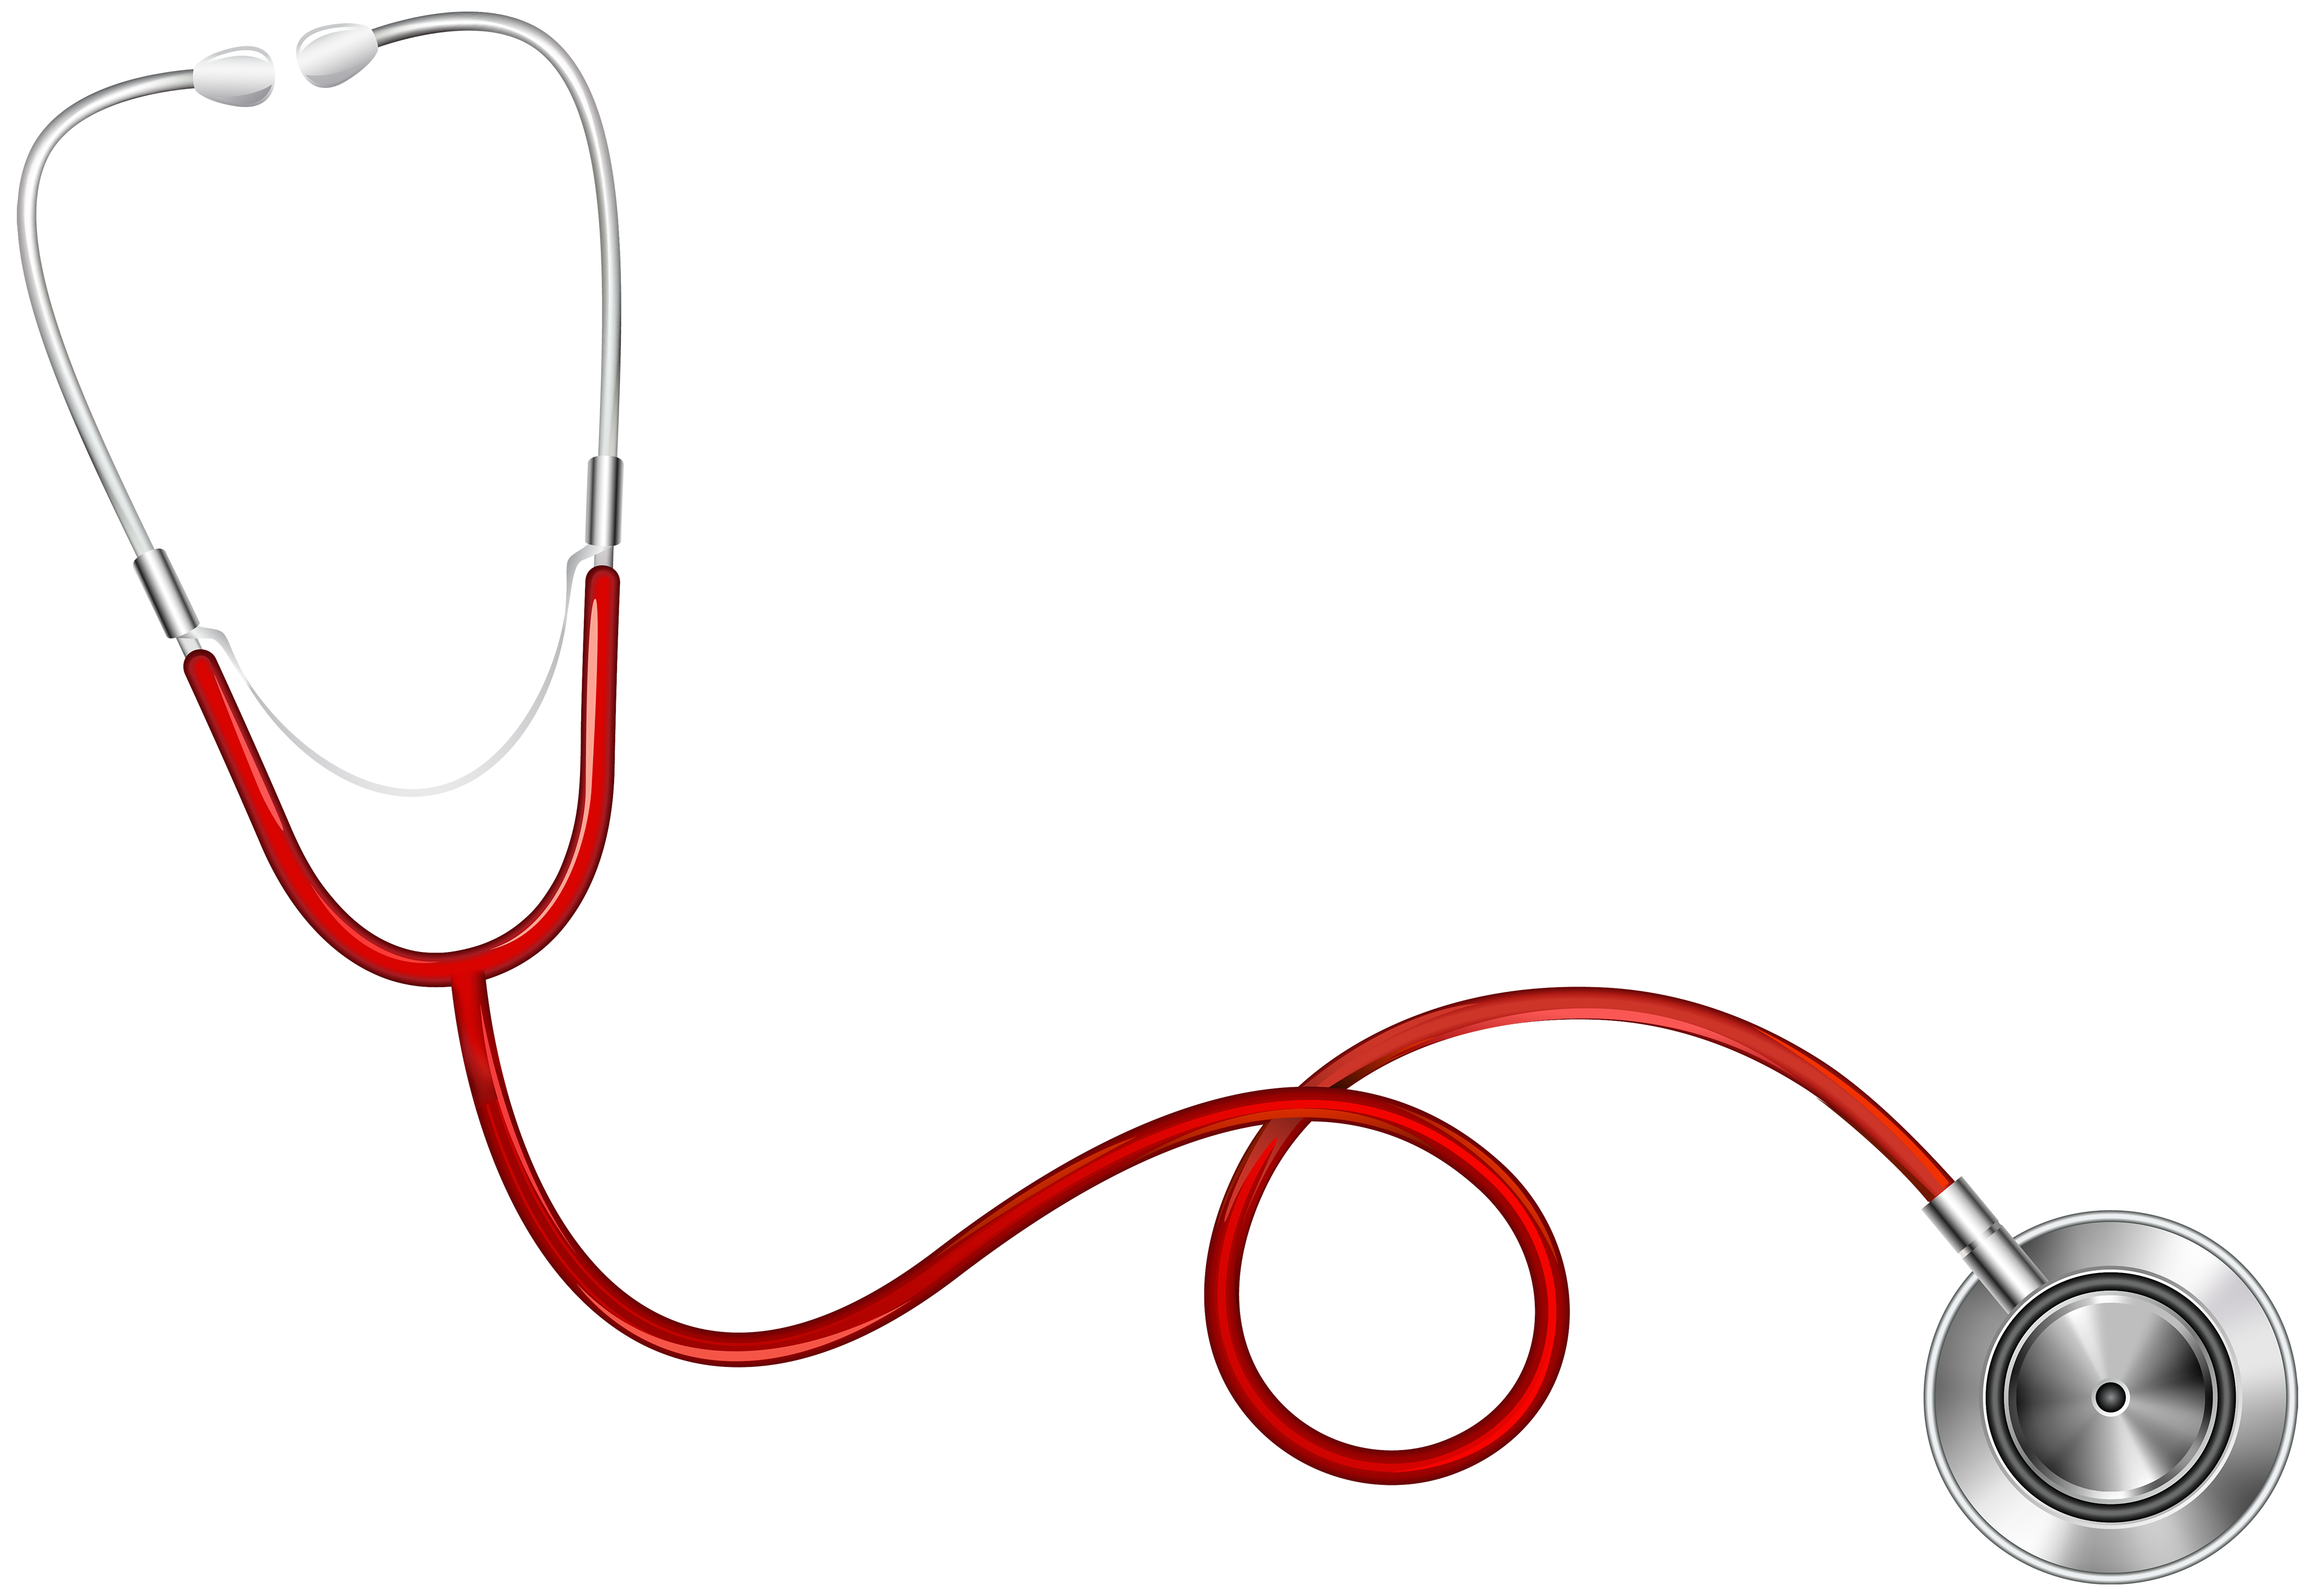 Shot clipart dr tool. Doctors stethoscope png best